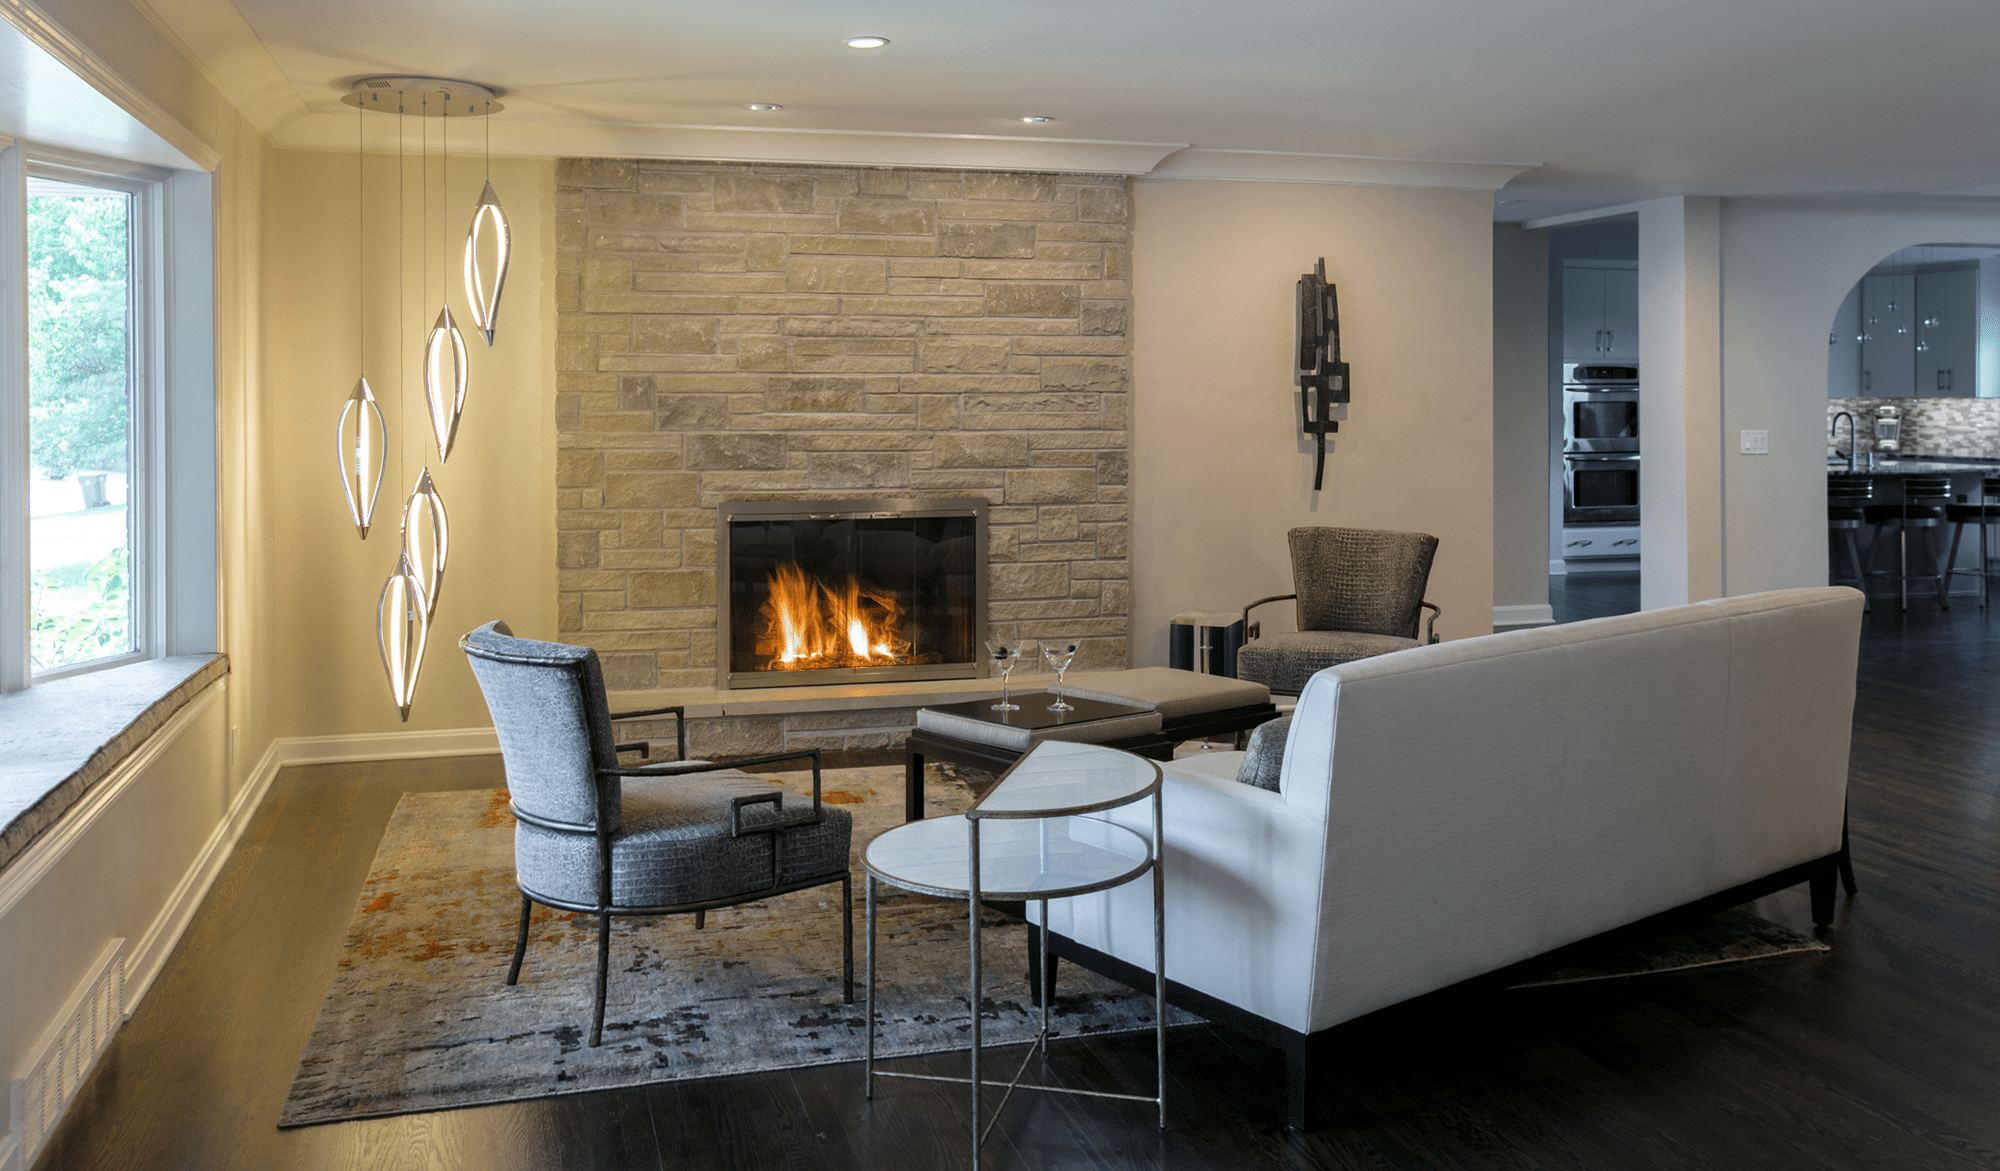 Gray sofa and fireplace turned on